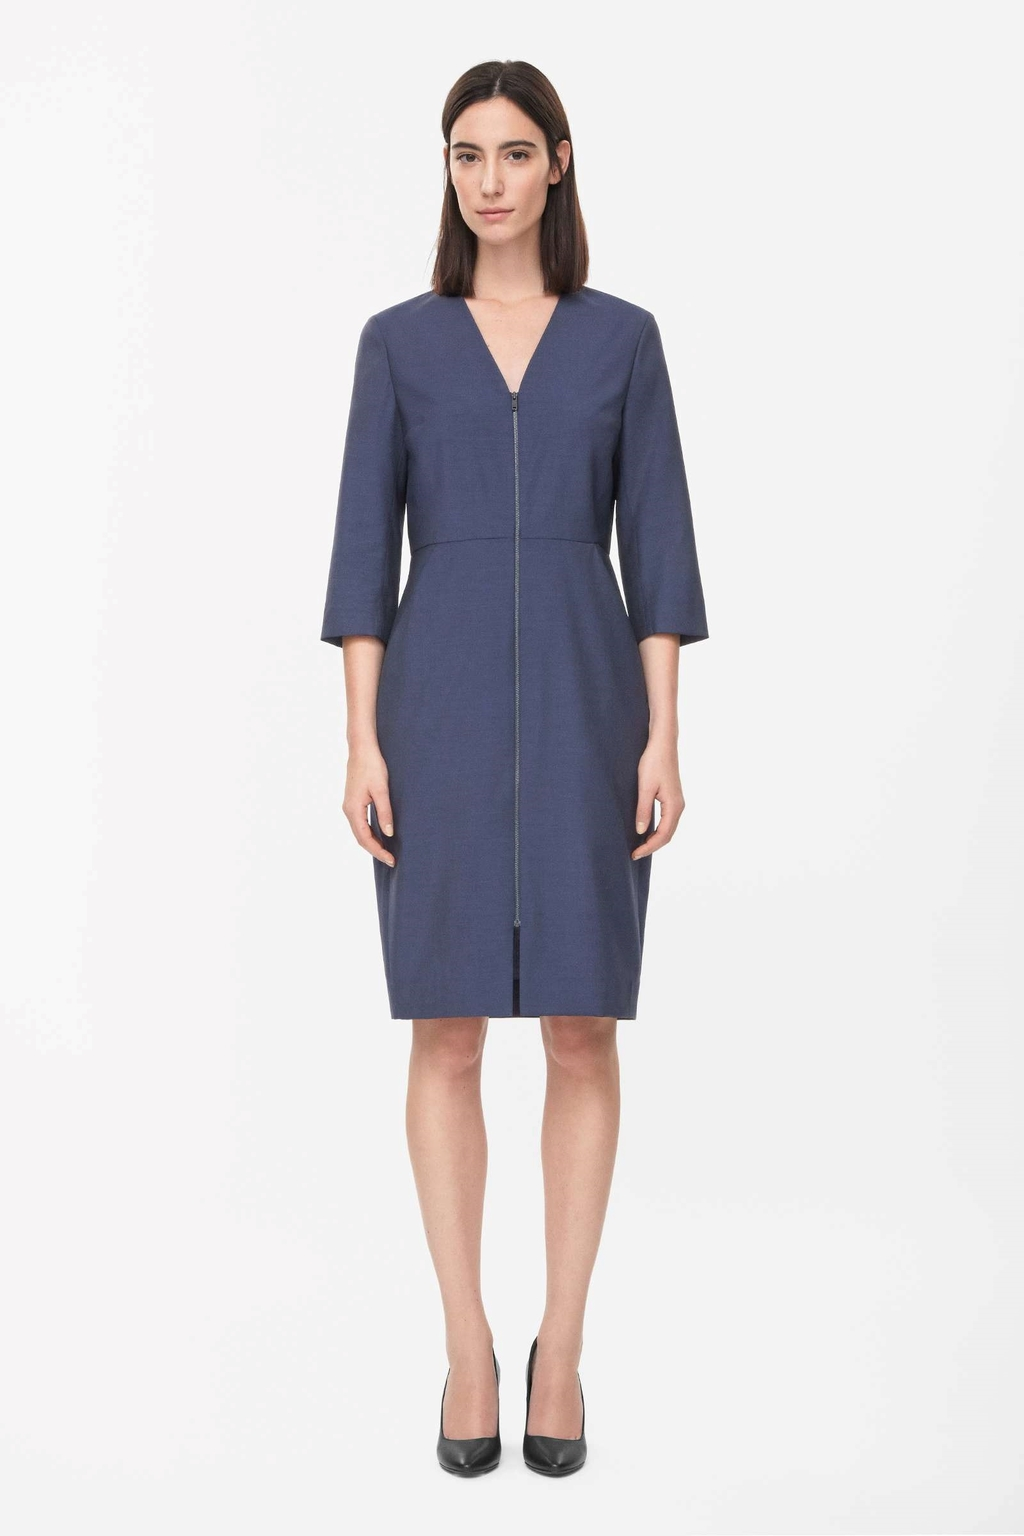 Zip Up Wool Dress - style: shift; neckline: v-neck; fit: tailored/fitted; pattern: plain; predominant colour: navy; occasions: casual, work, creative work; length: just above the knee; fibres: wool - 100%; sleeve length: 3/4 length; sleeve style: standard; pattern type: fabric; texture group: woven light midweight; embellishment: zips; season: s/s 2015; wardrobe: highlight; embellishment location: bust, skirt